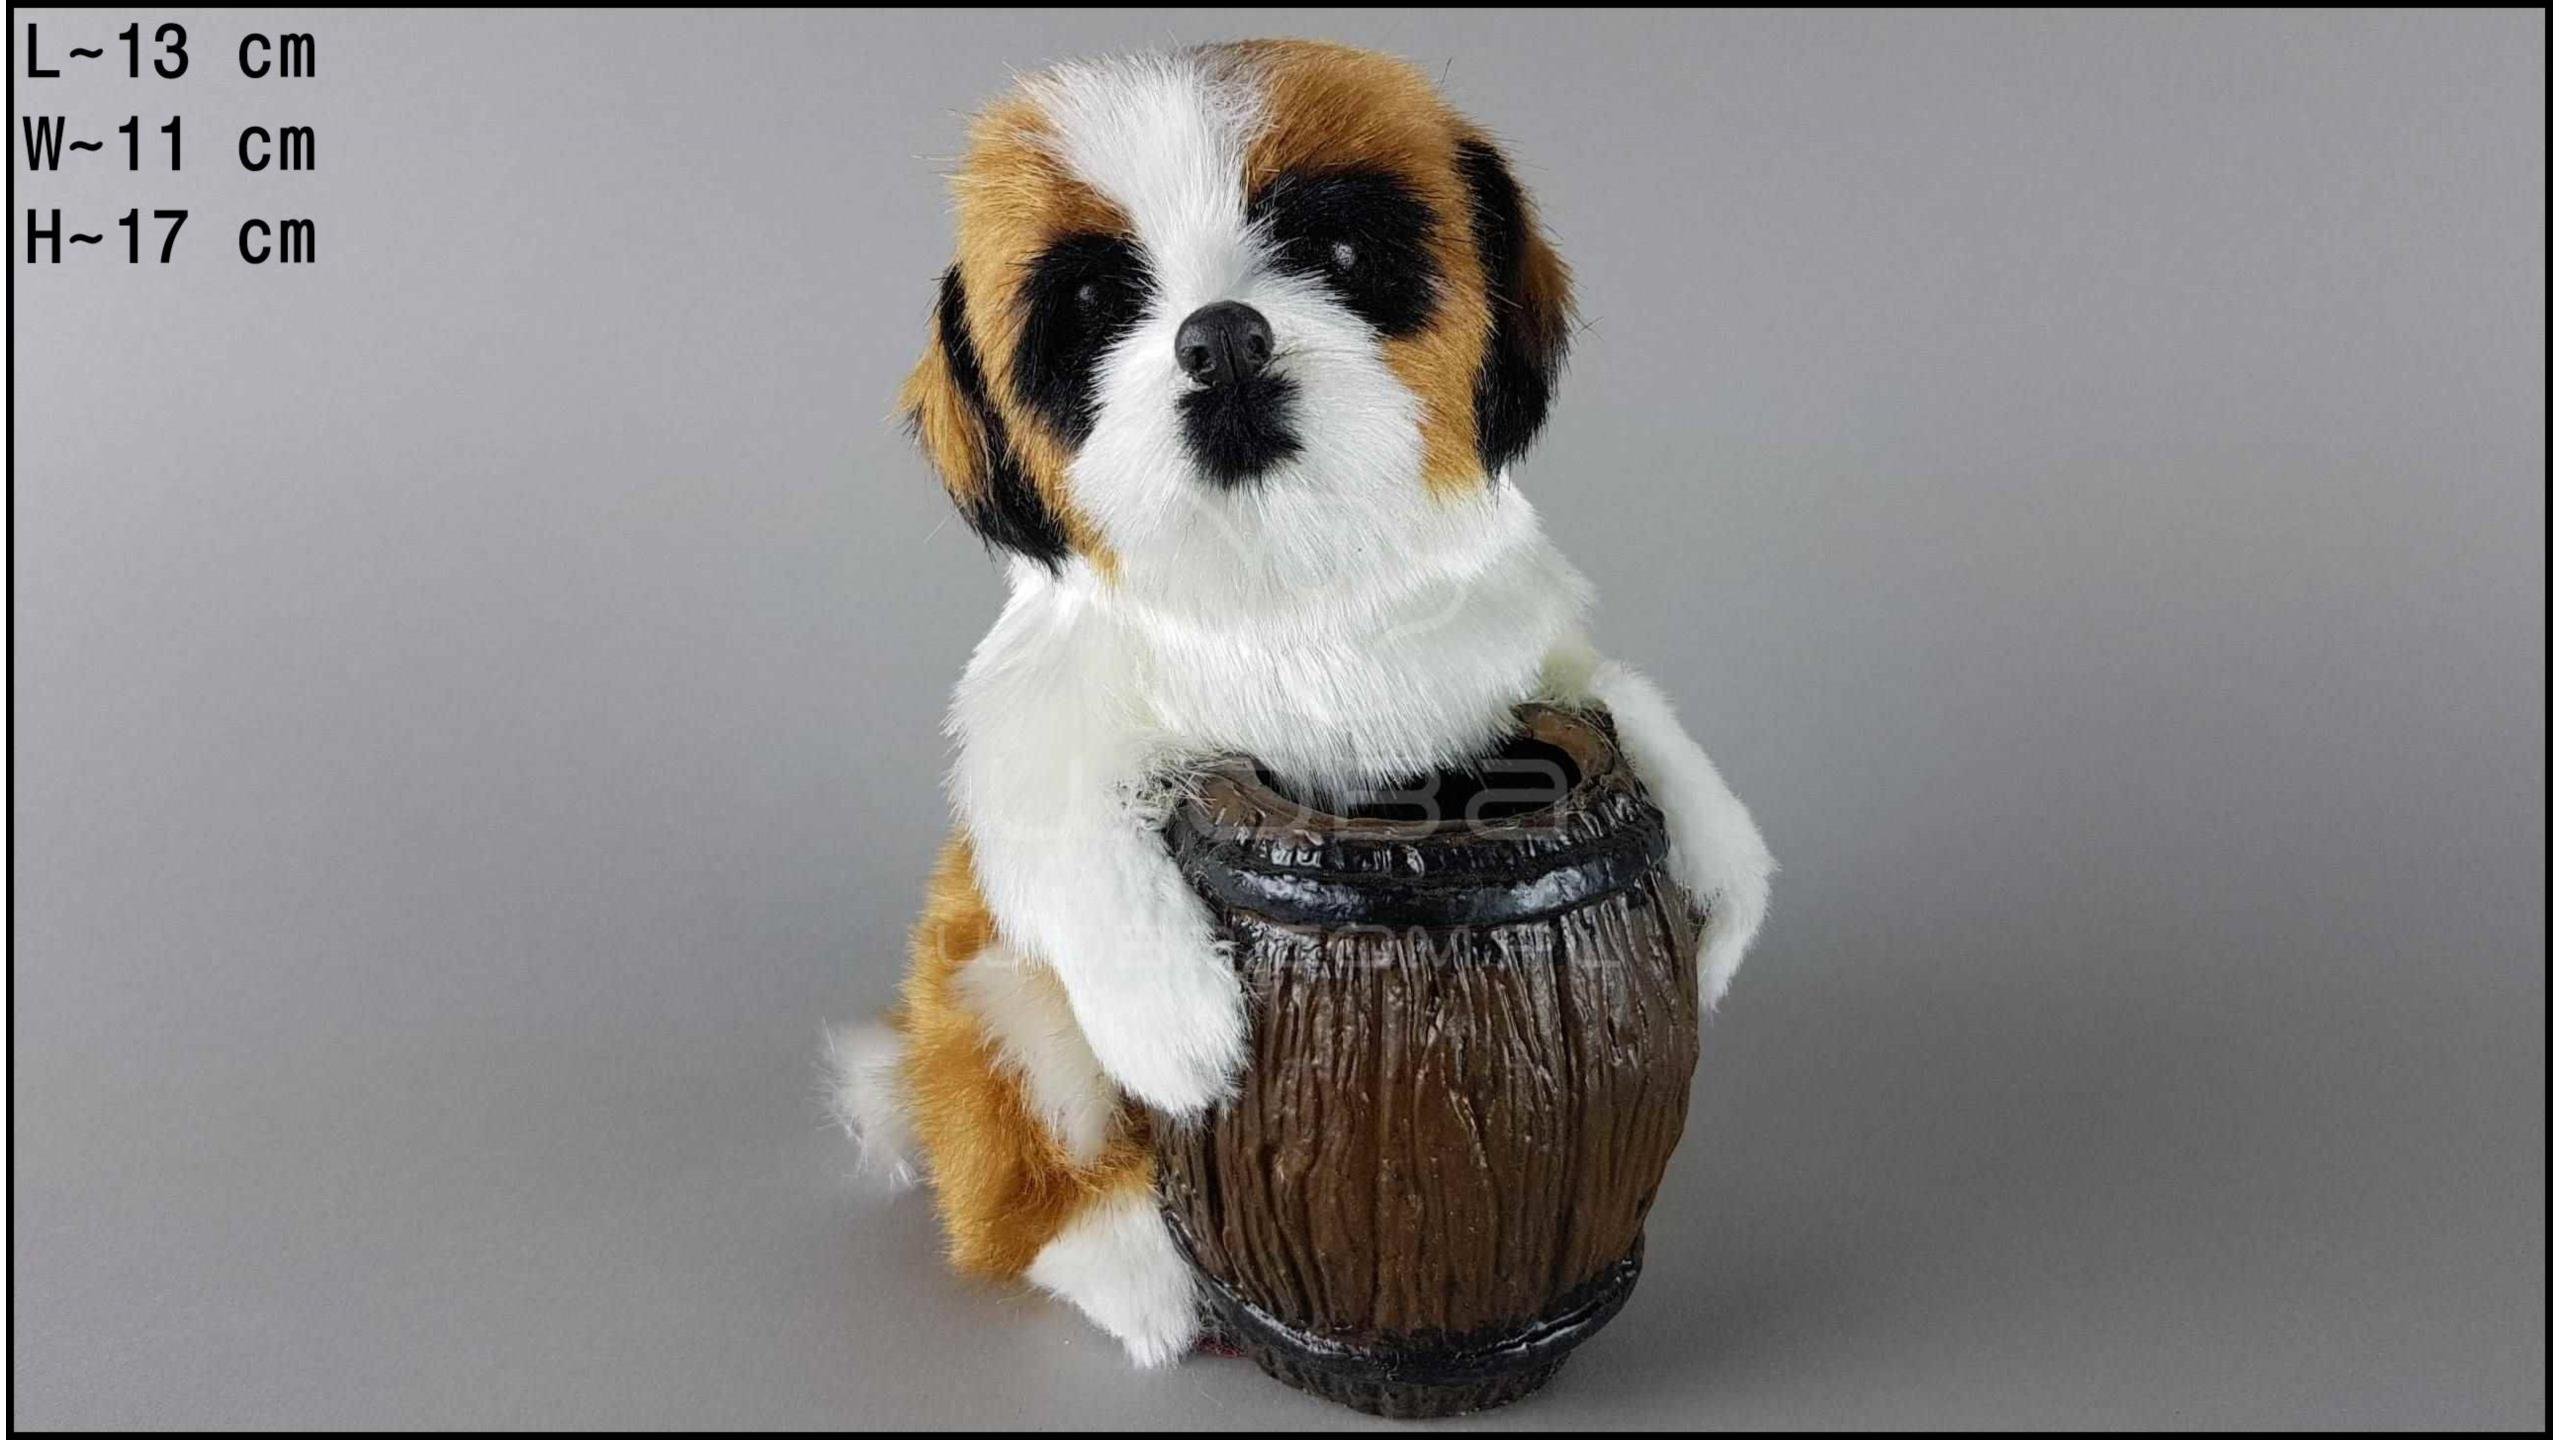 Dog with a barrel - St. Bernard